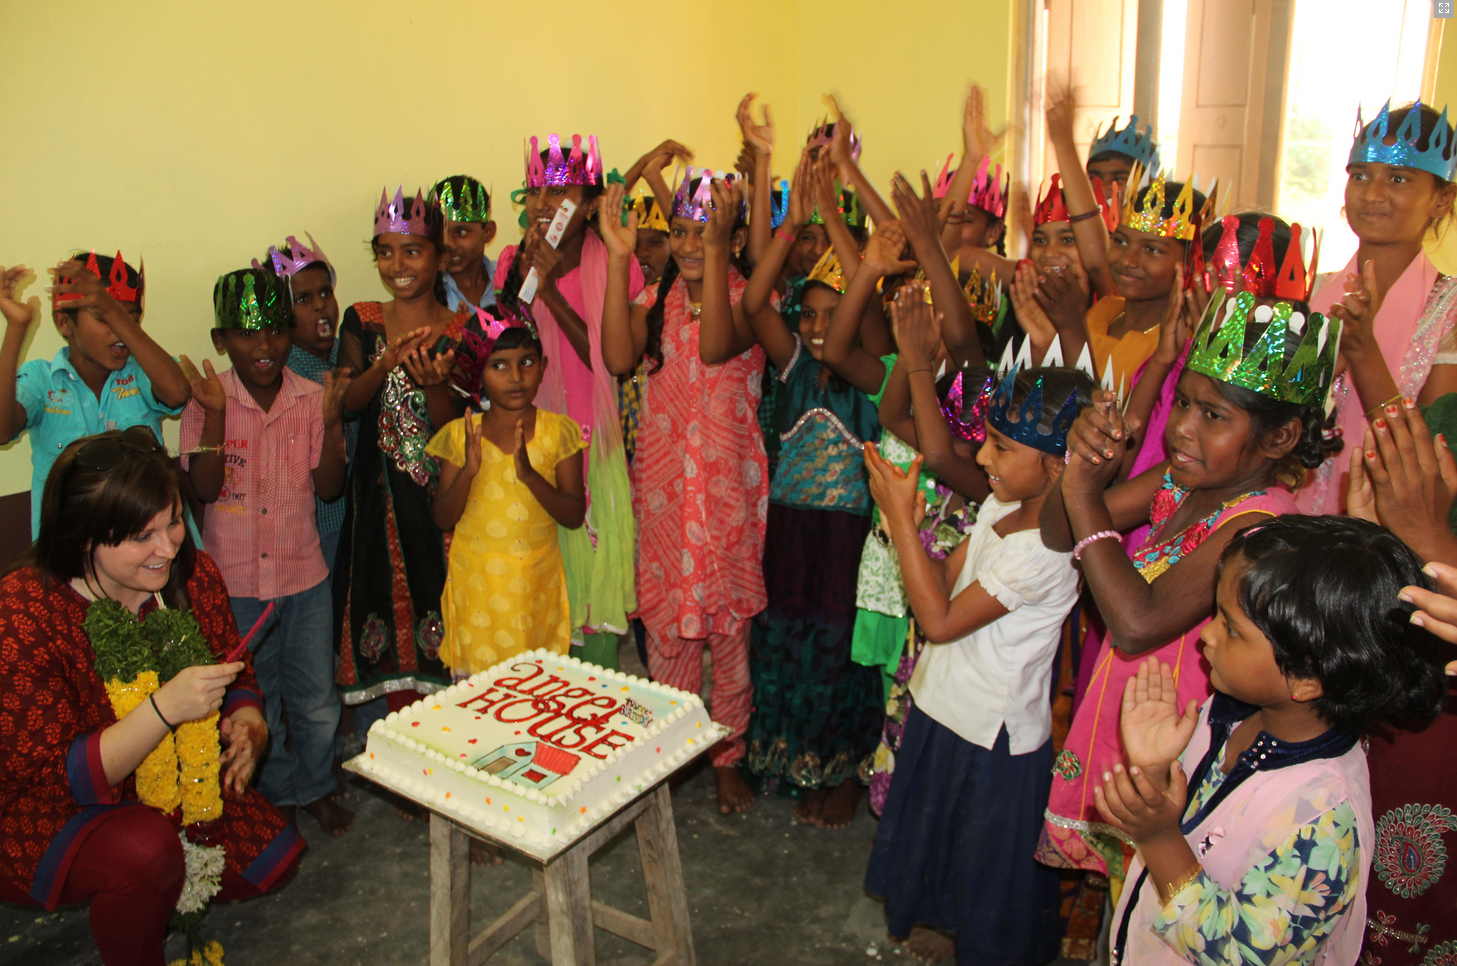 A joyous celebration in their new home!